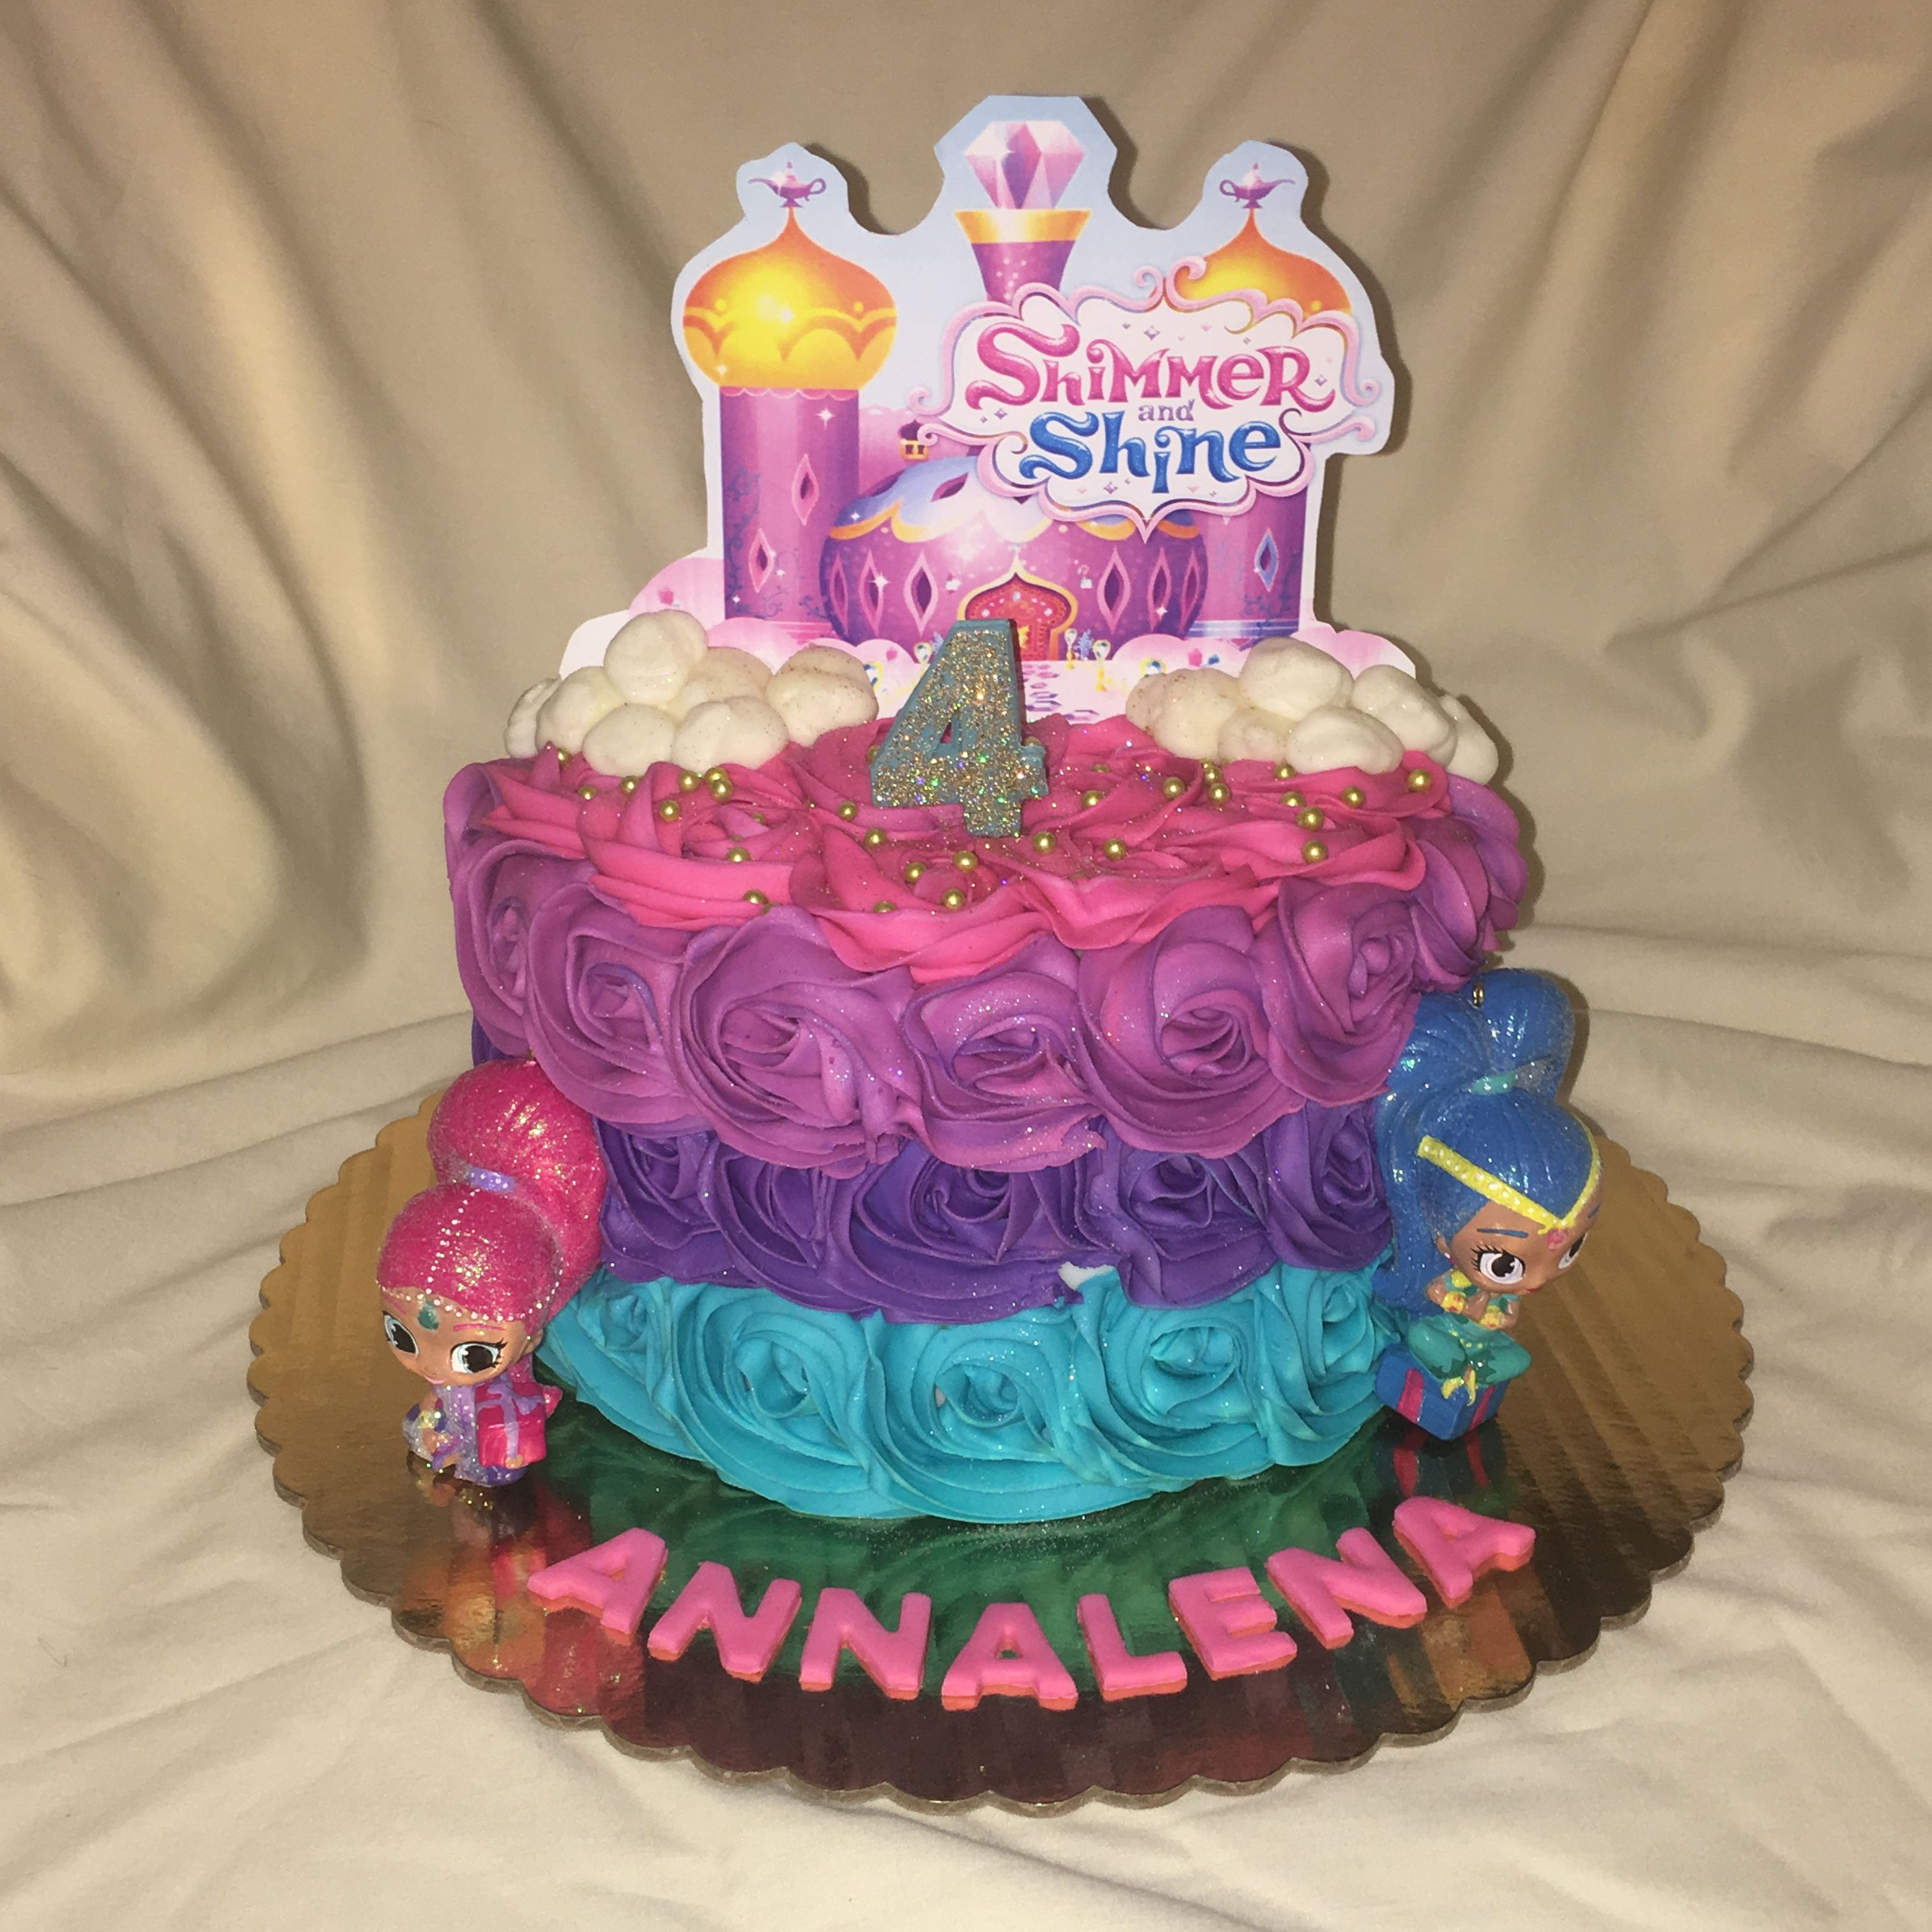 Shimmer And Shine Birthday Cake By Inphinity Designs Located In San